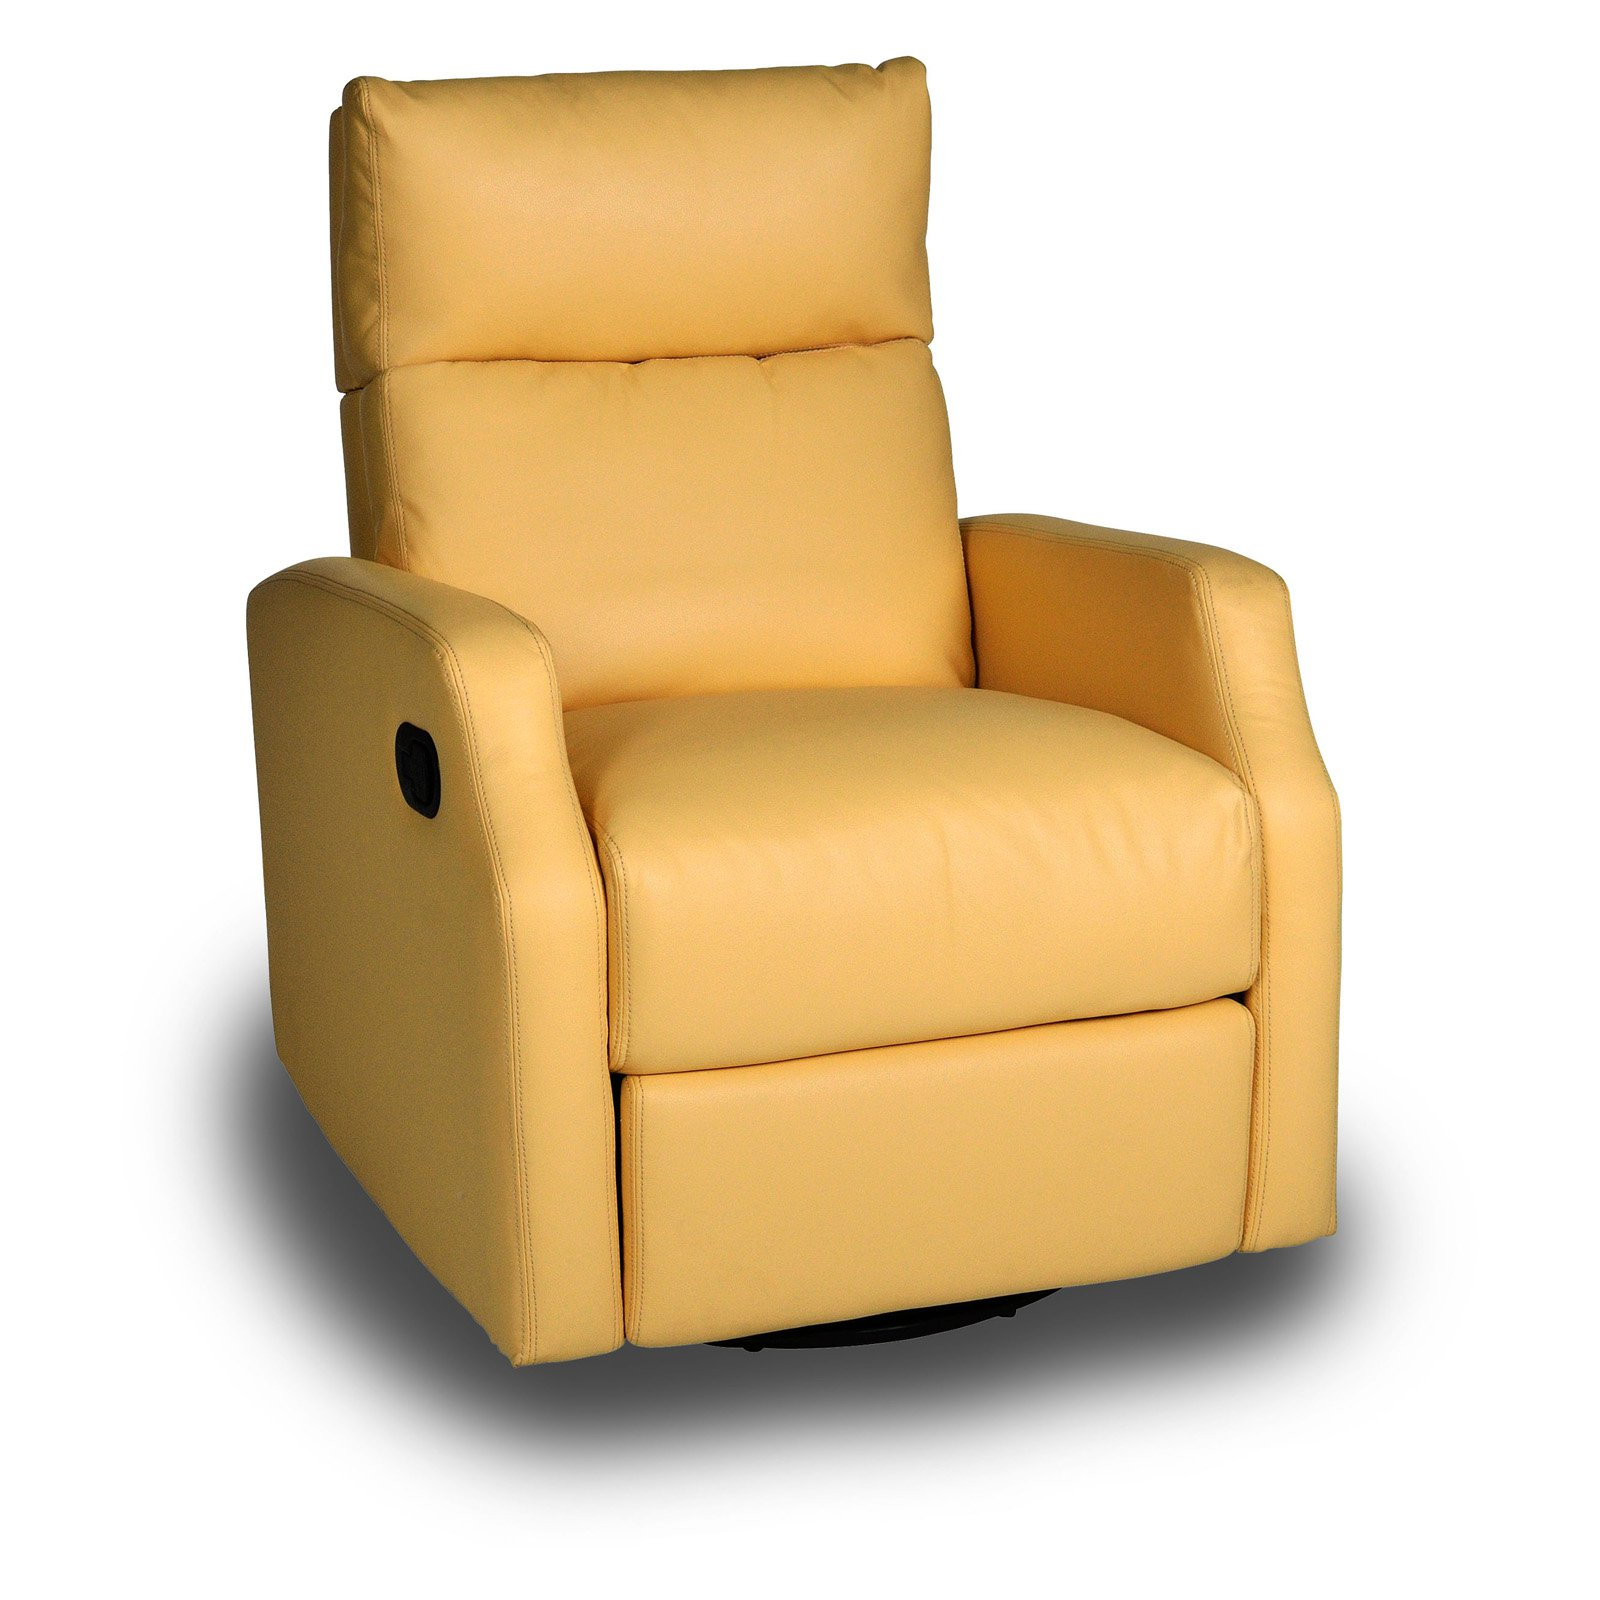 Peachy Opulence Home Sidney Swivel Glider Recliner Bedford Yellow Customarchery Wood Chair Design Ideas Customarcherynet